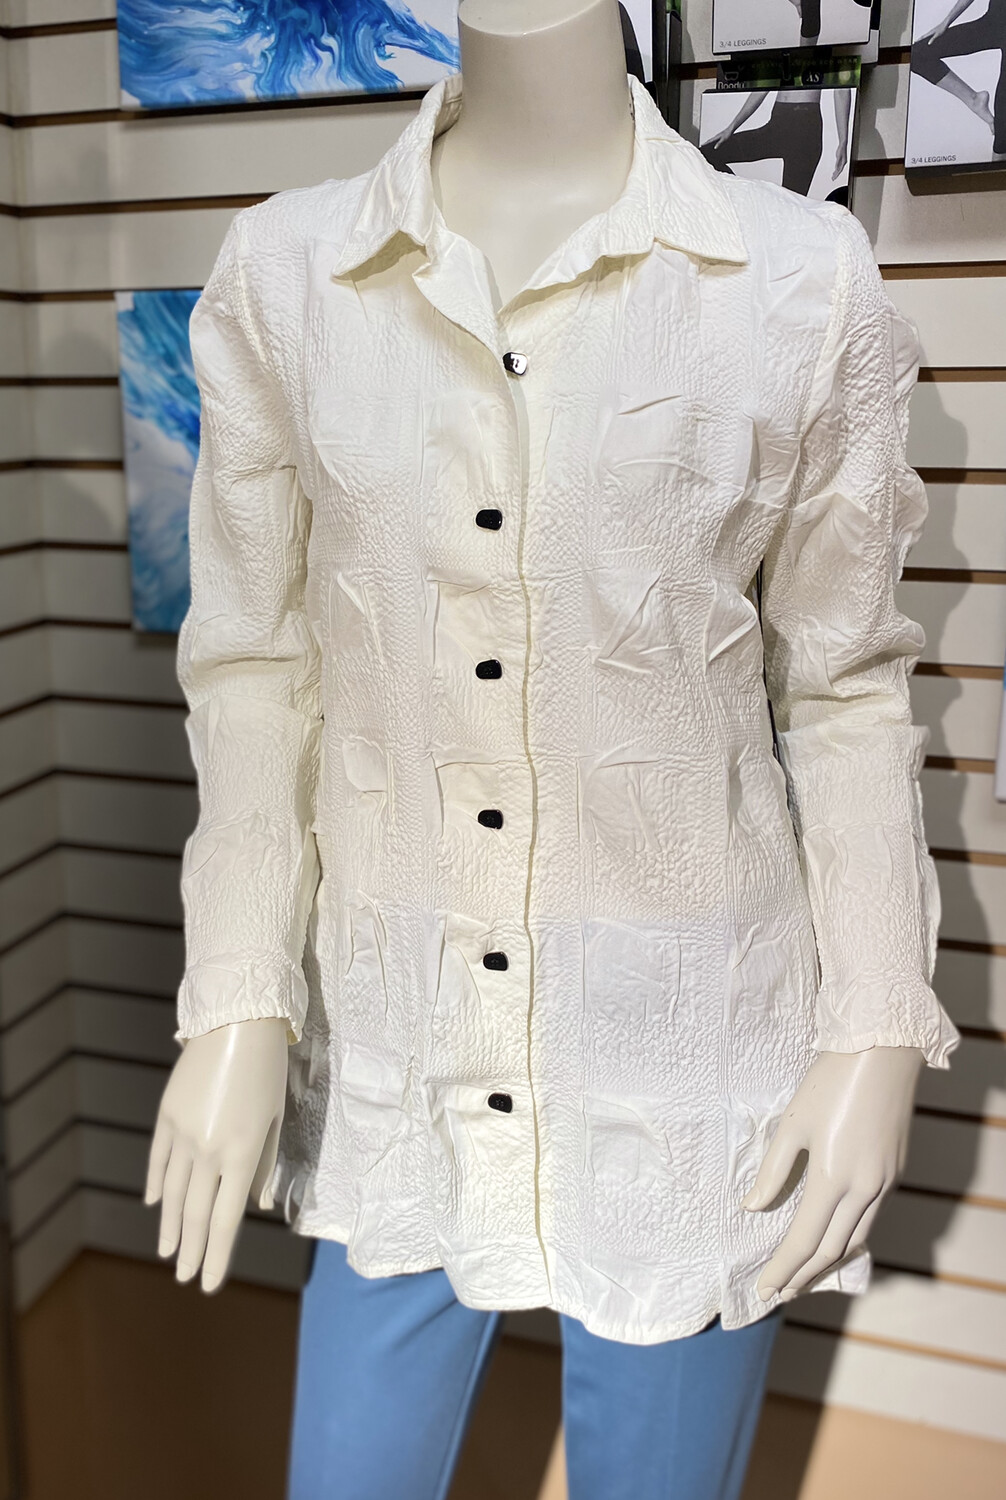 LIV Savannah Shirt White L